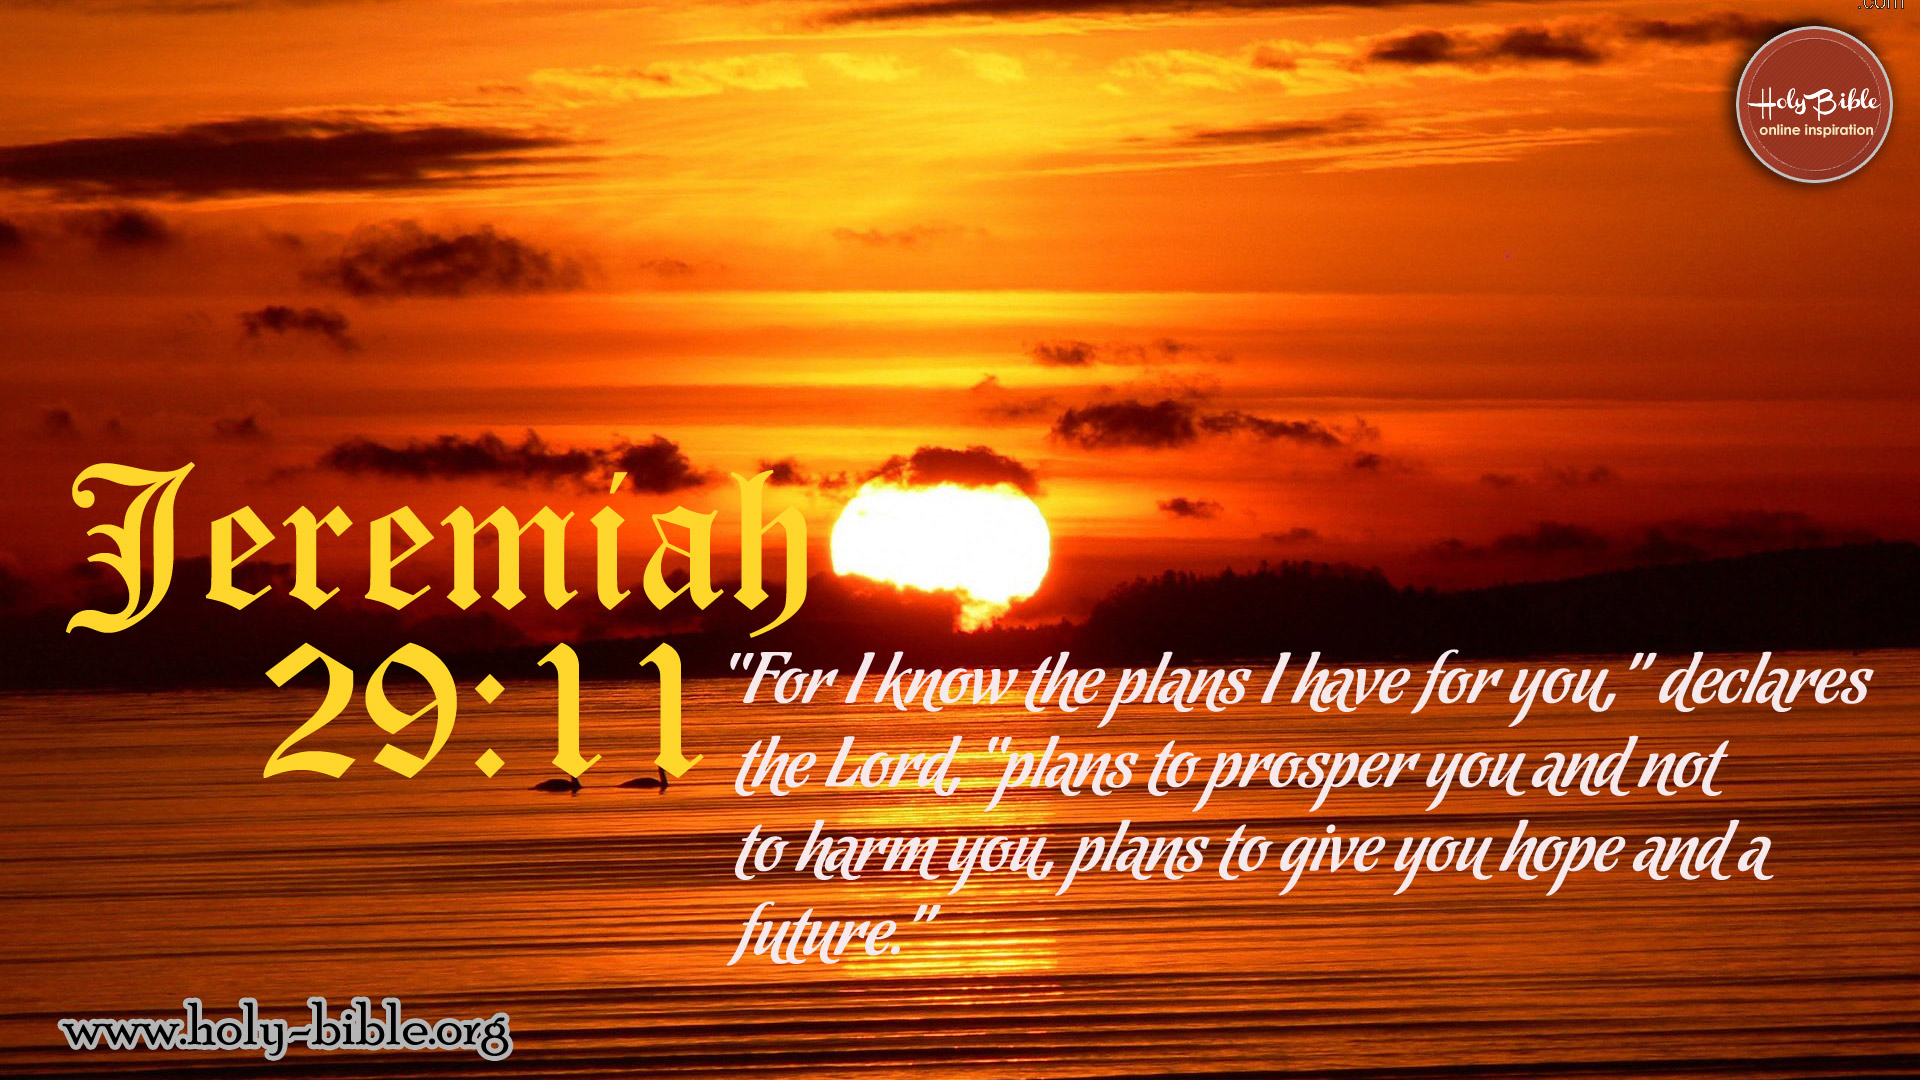 Clipart Of Jeremiah Almond Tree In Bible.